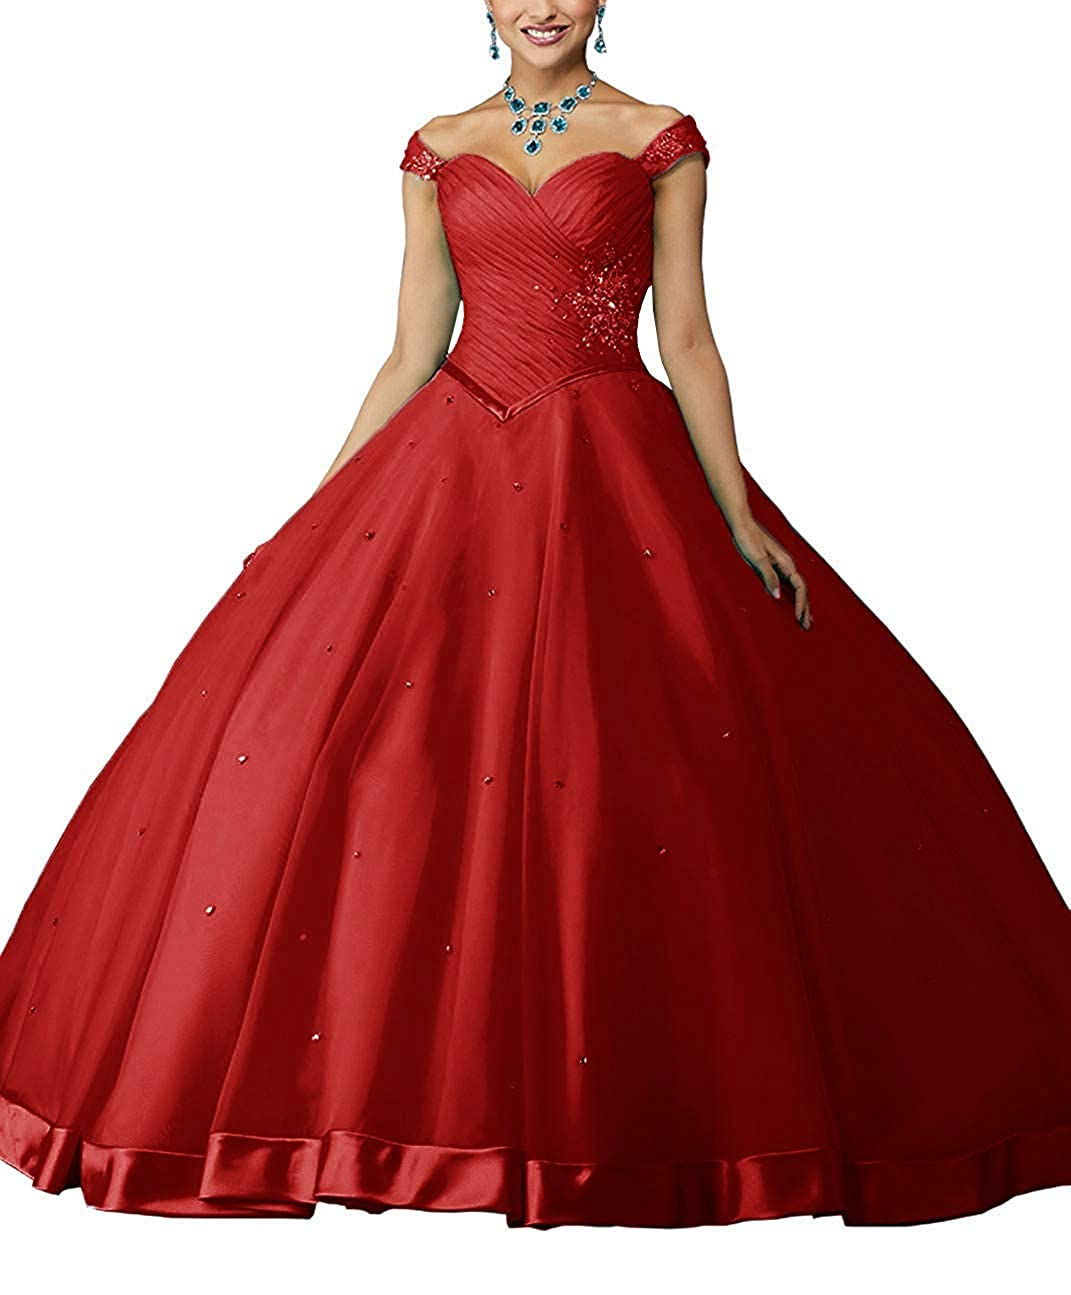 Red ZLQQ Women's Beaded Ball Gown Lace Applique Sweet 16 Detachable Quinceanera Dress